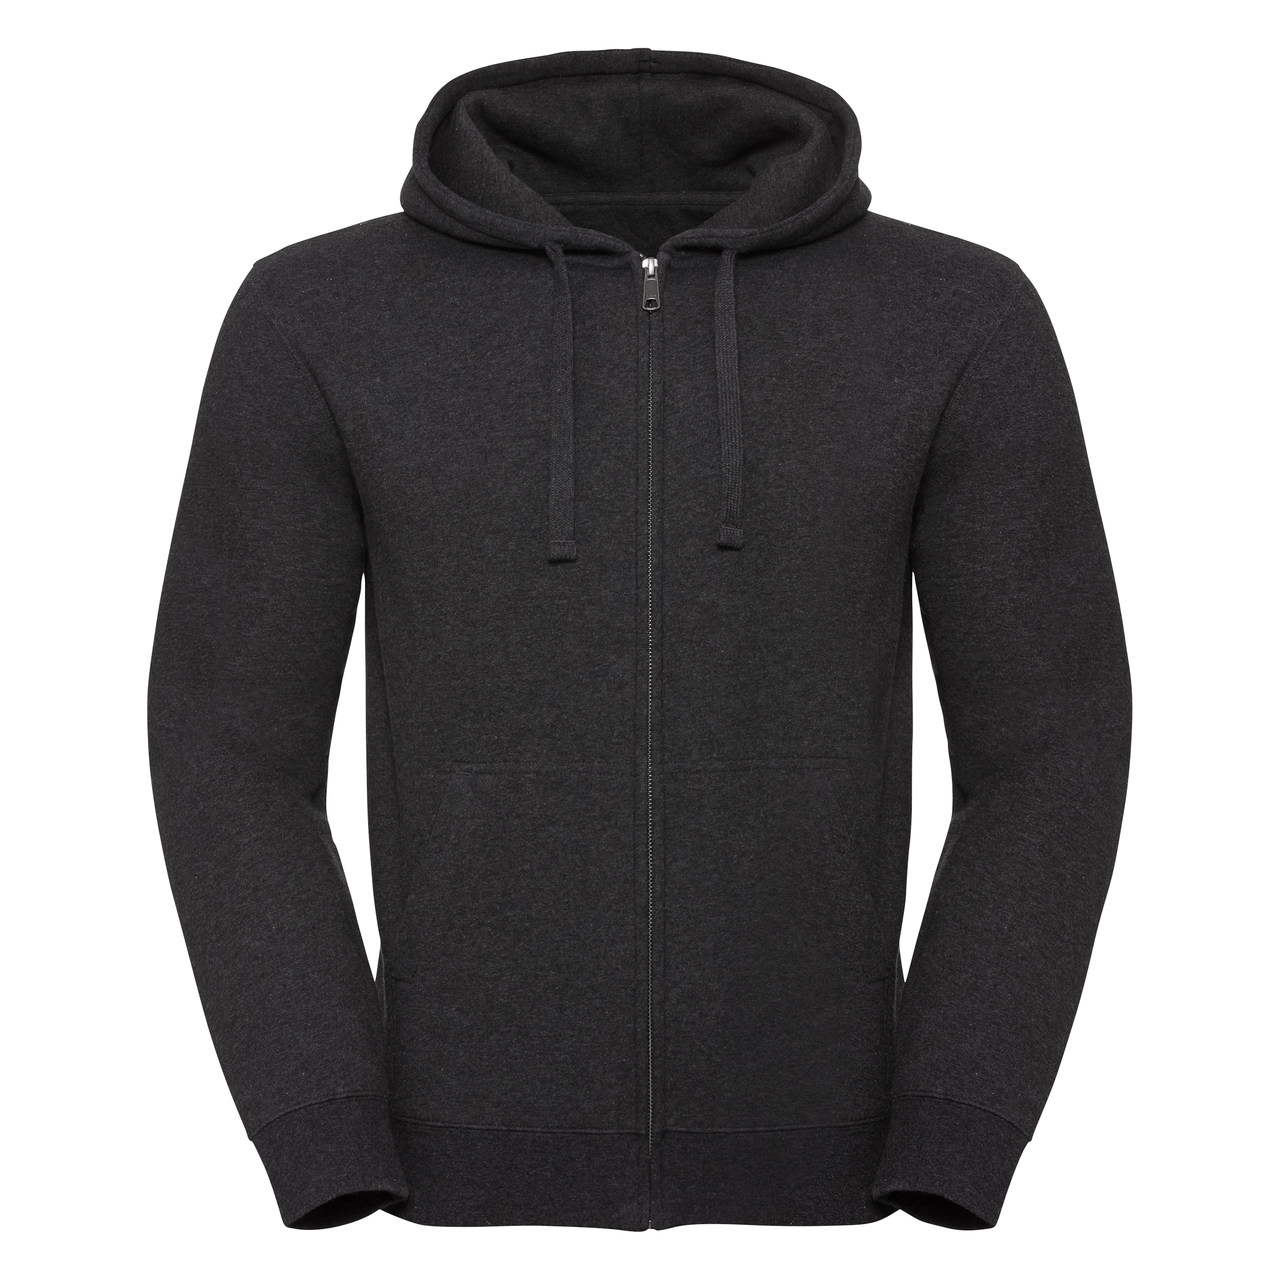 Męska bluza Authentic Melange Zipped Hooded Sweat R263M 75% bawełny ring-spun; 21% poliestru;4% wiskozy 280g